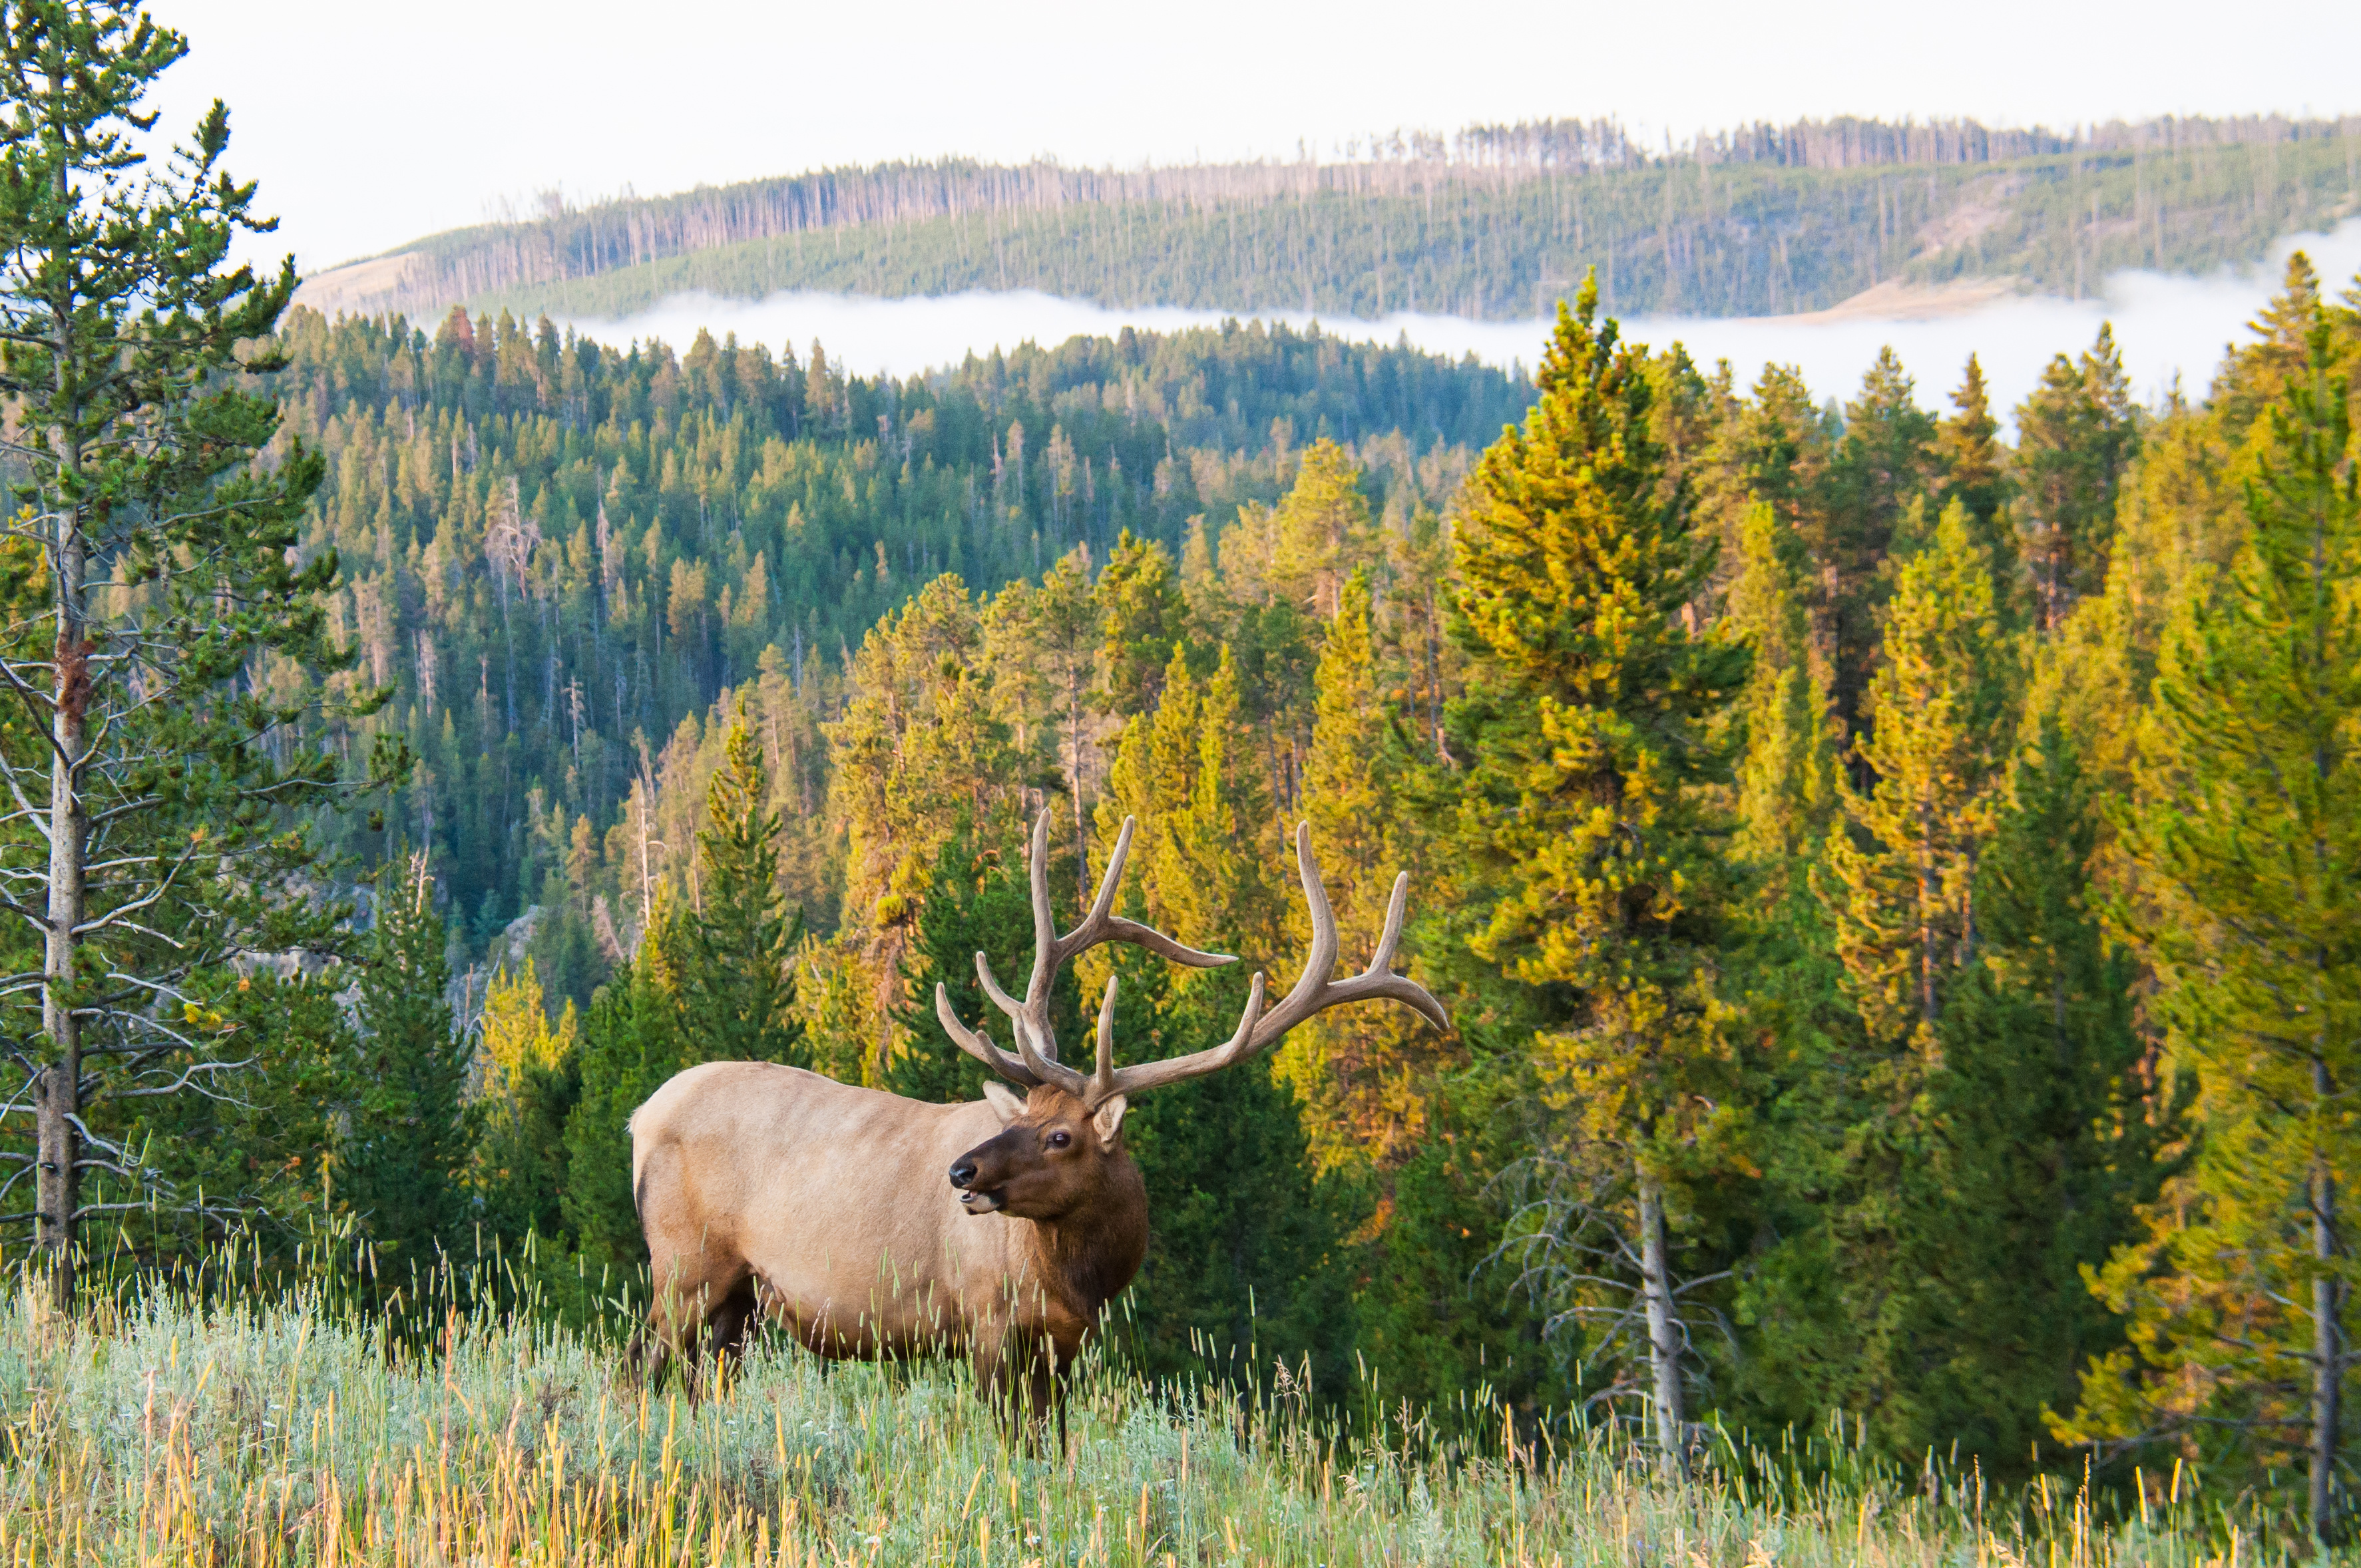 For archery elk hunters, elk will bed wherever they feel most secure.